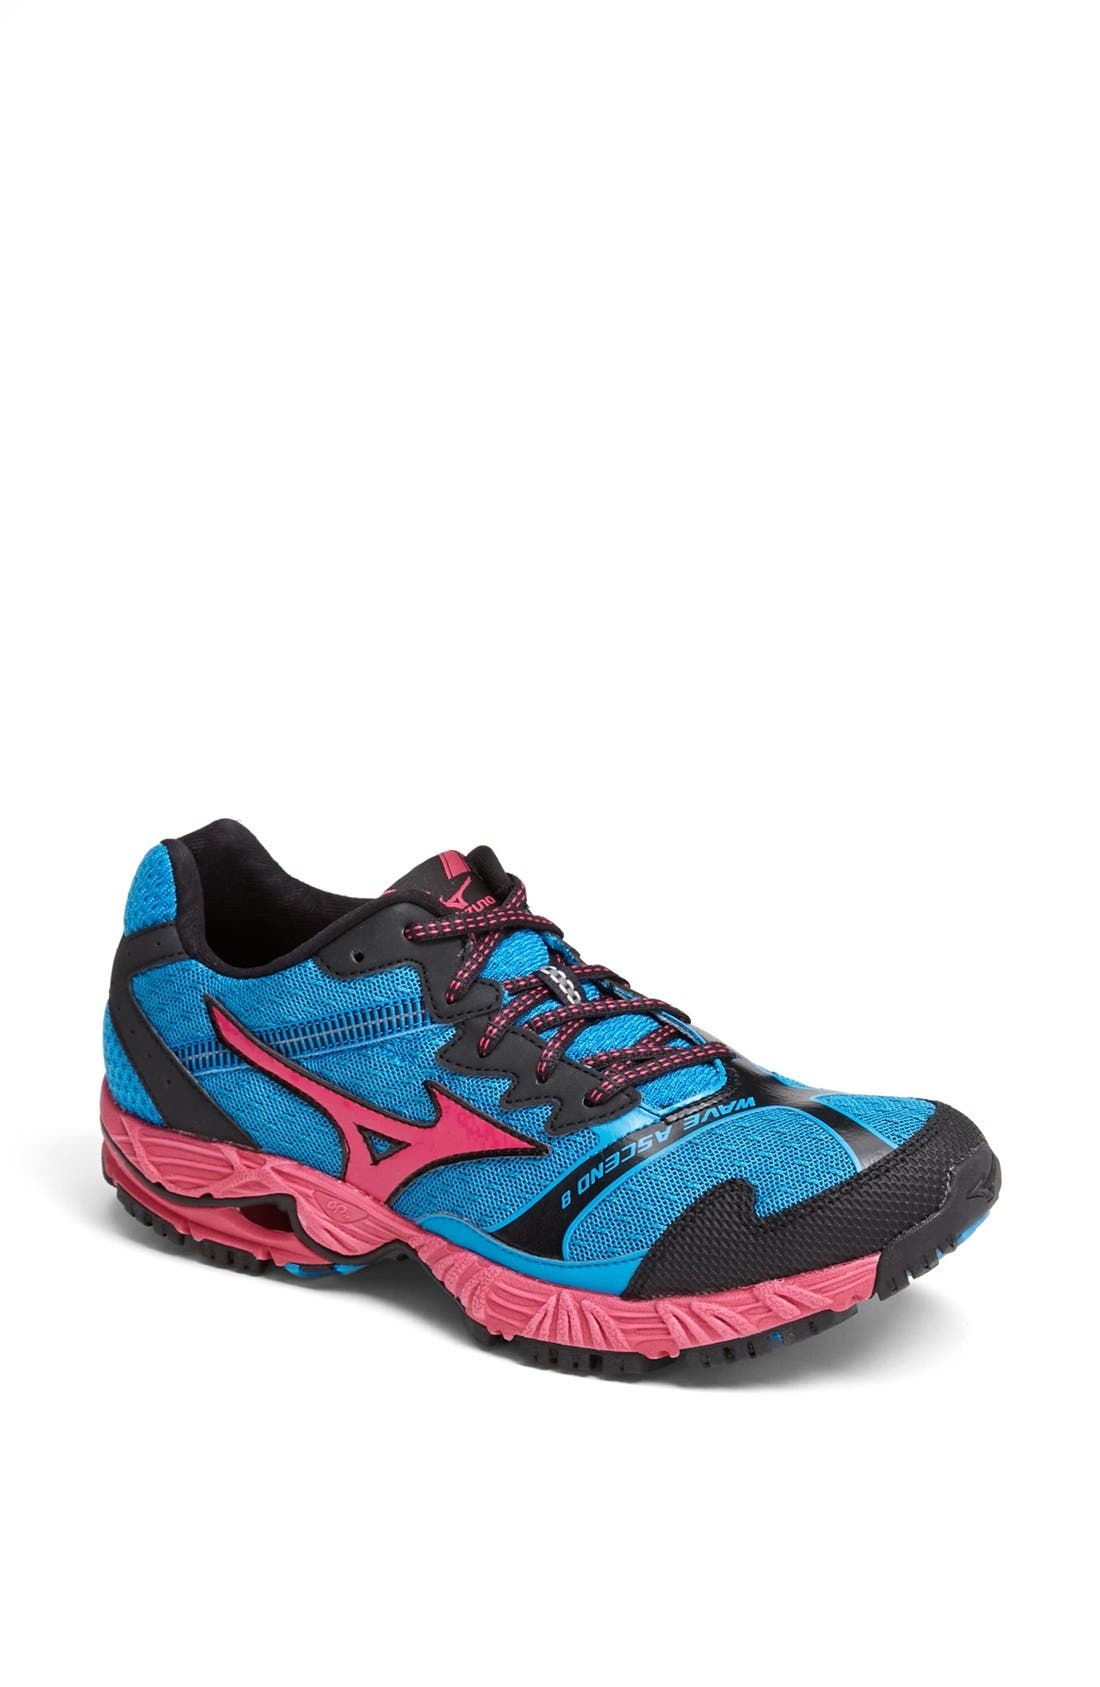 Alternate Image 1 Selected - Mizuno 'Wave Ascend 8' Running Shoe (Women)